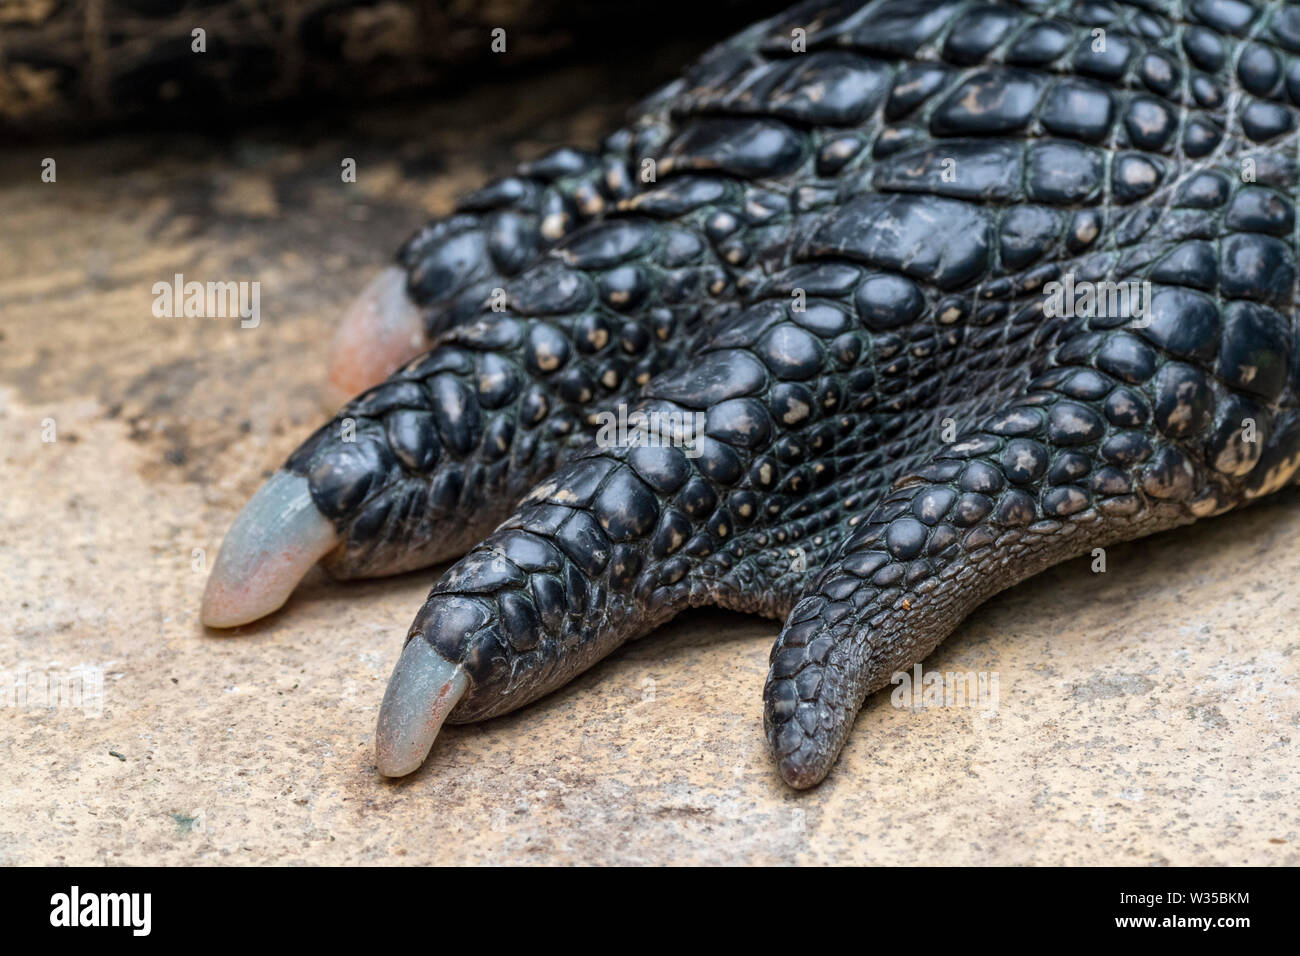 American alligator / gator / common alligator (Alligator mississippiensis) close-up of foot showing claws and scutes - Stock Image